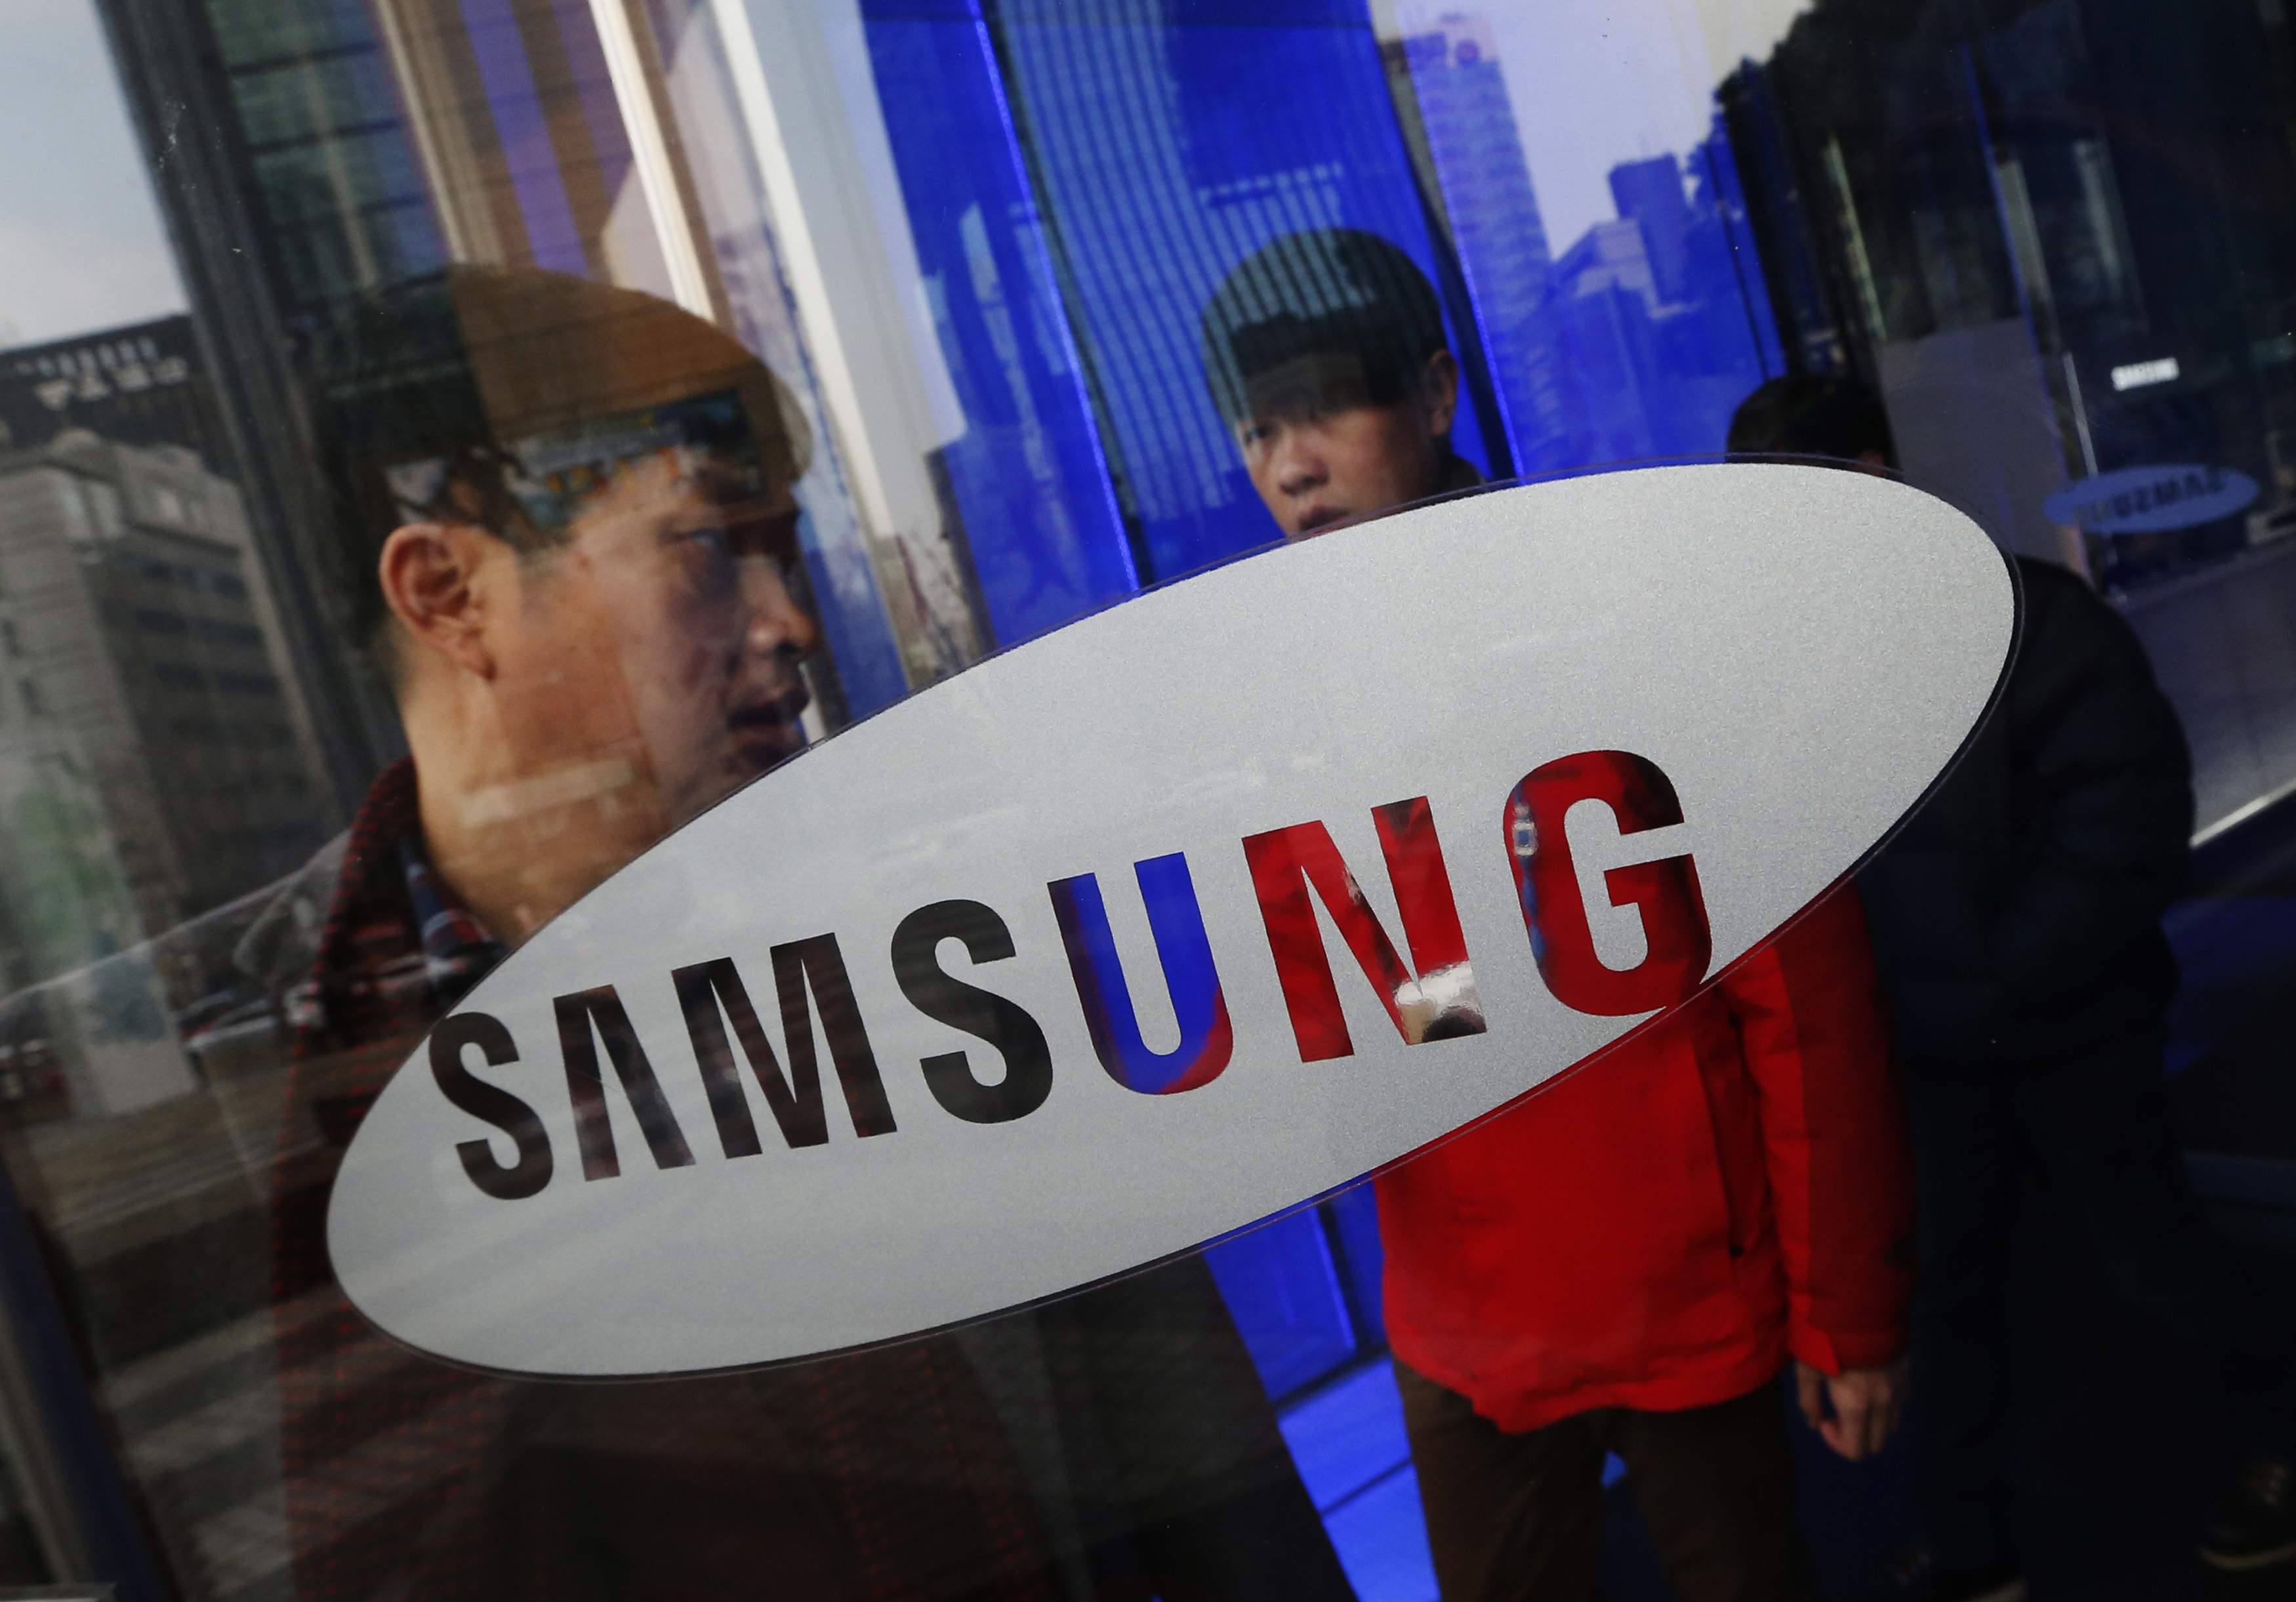 A man walks out of Samsung Electronics' headquarters in Seoul January 6, 2014. Samsung Electronics Co Ltd is bracing for its weakest smartphone profit growth this year since 2007 as arch rival Apple Inc challenges its domination in China's $80 billion market. Picture taken January 6, 2014.  REUTERS/Kim Hong-Ji (SOUTH KOREA - Tags: BUSINESS TELECOMS)